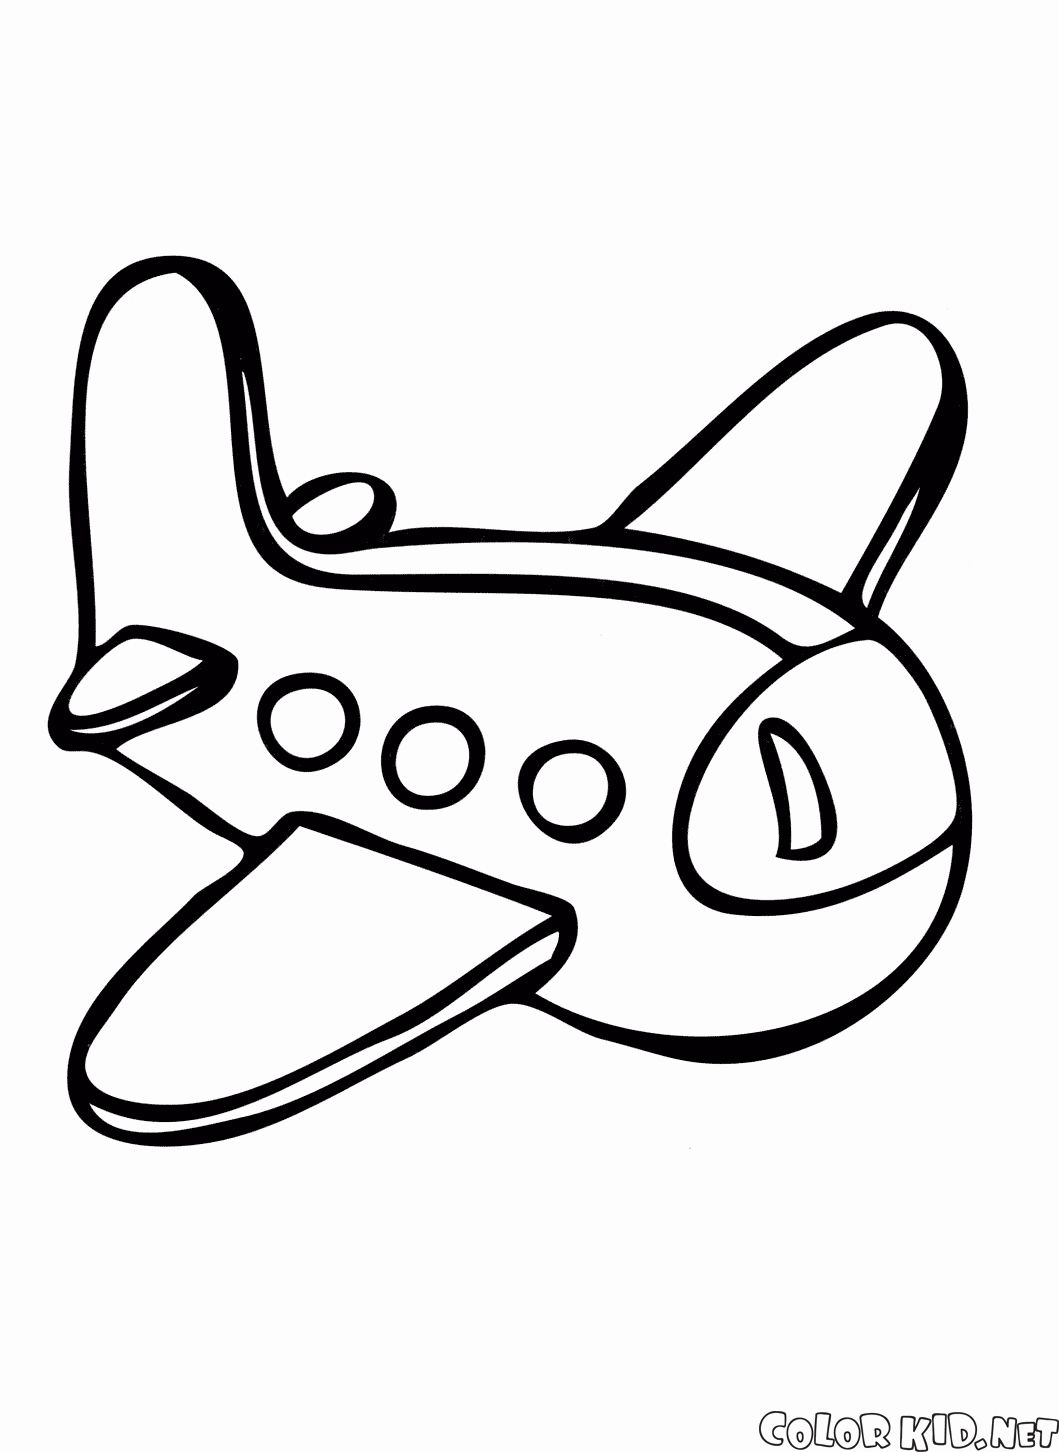 Coloring Pages Airplanes And Helicopters Airplane Coloring Pages Cars Coloring Pages Coloring Pages